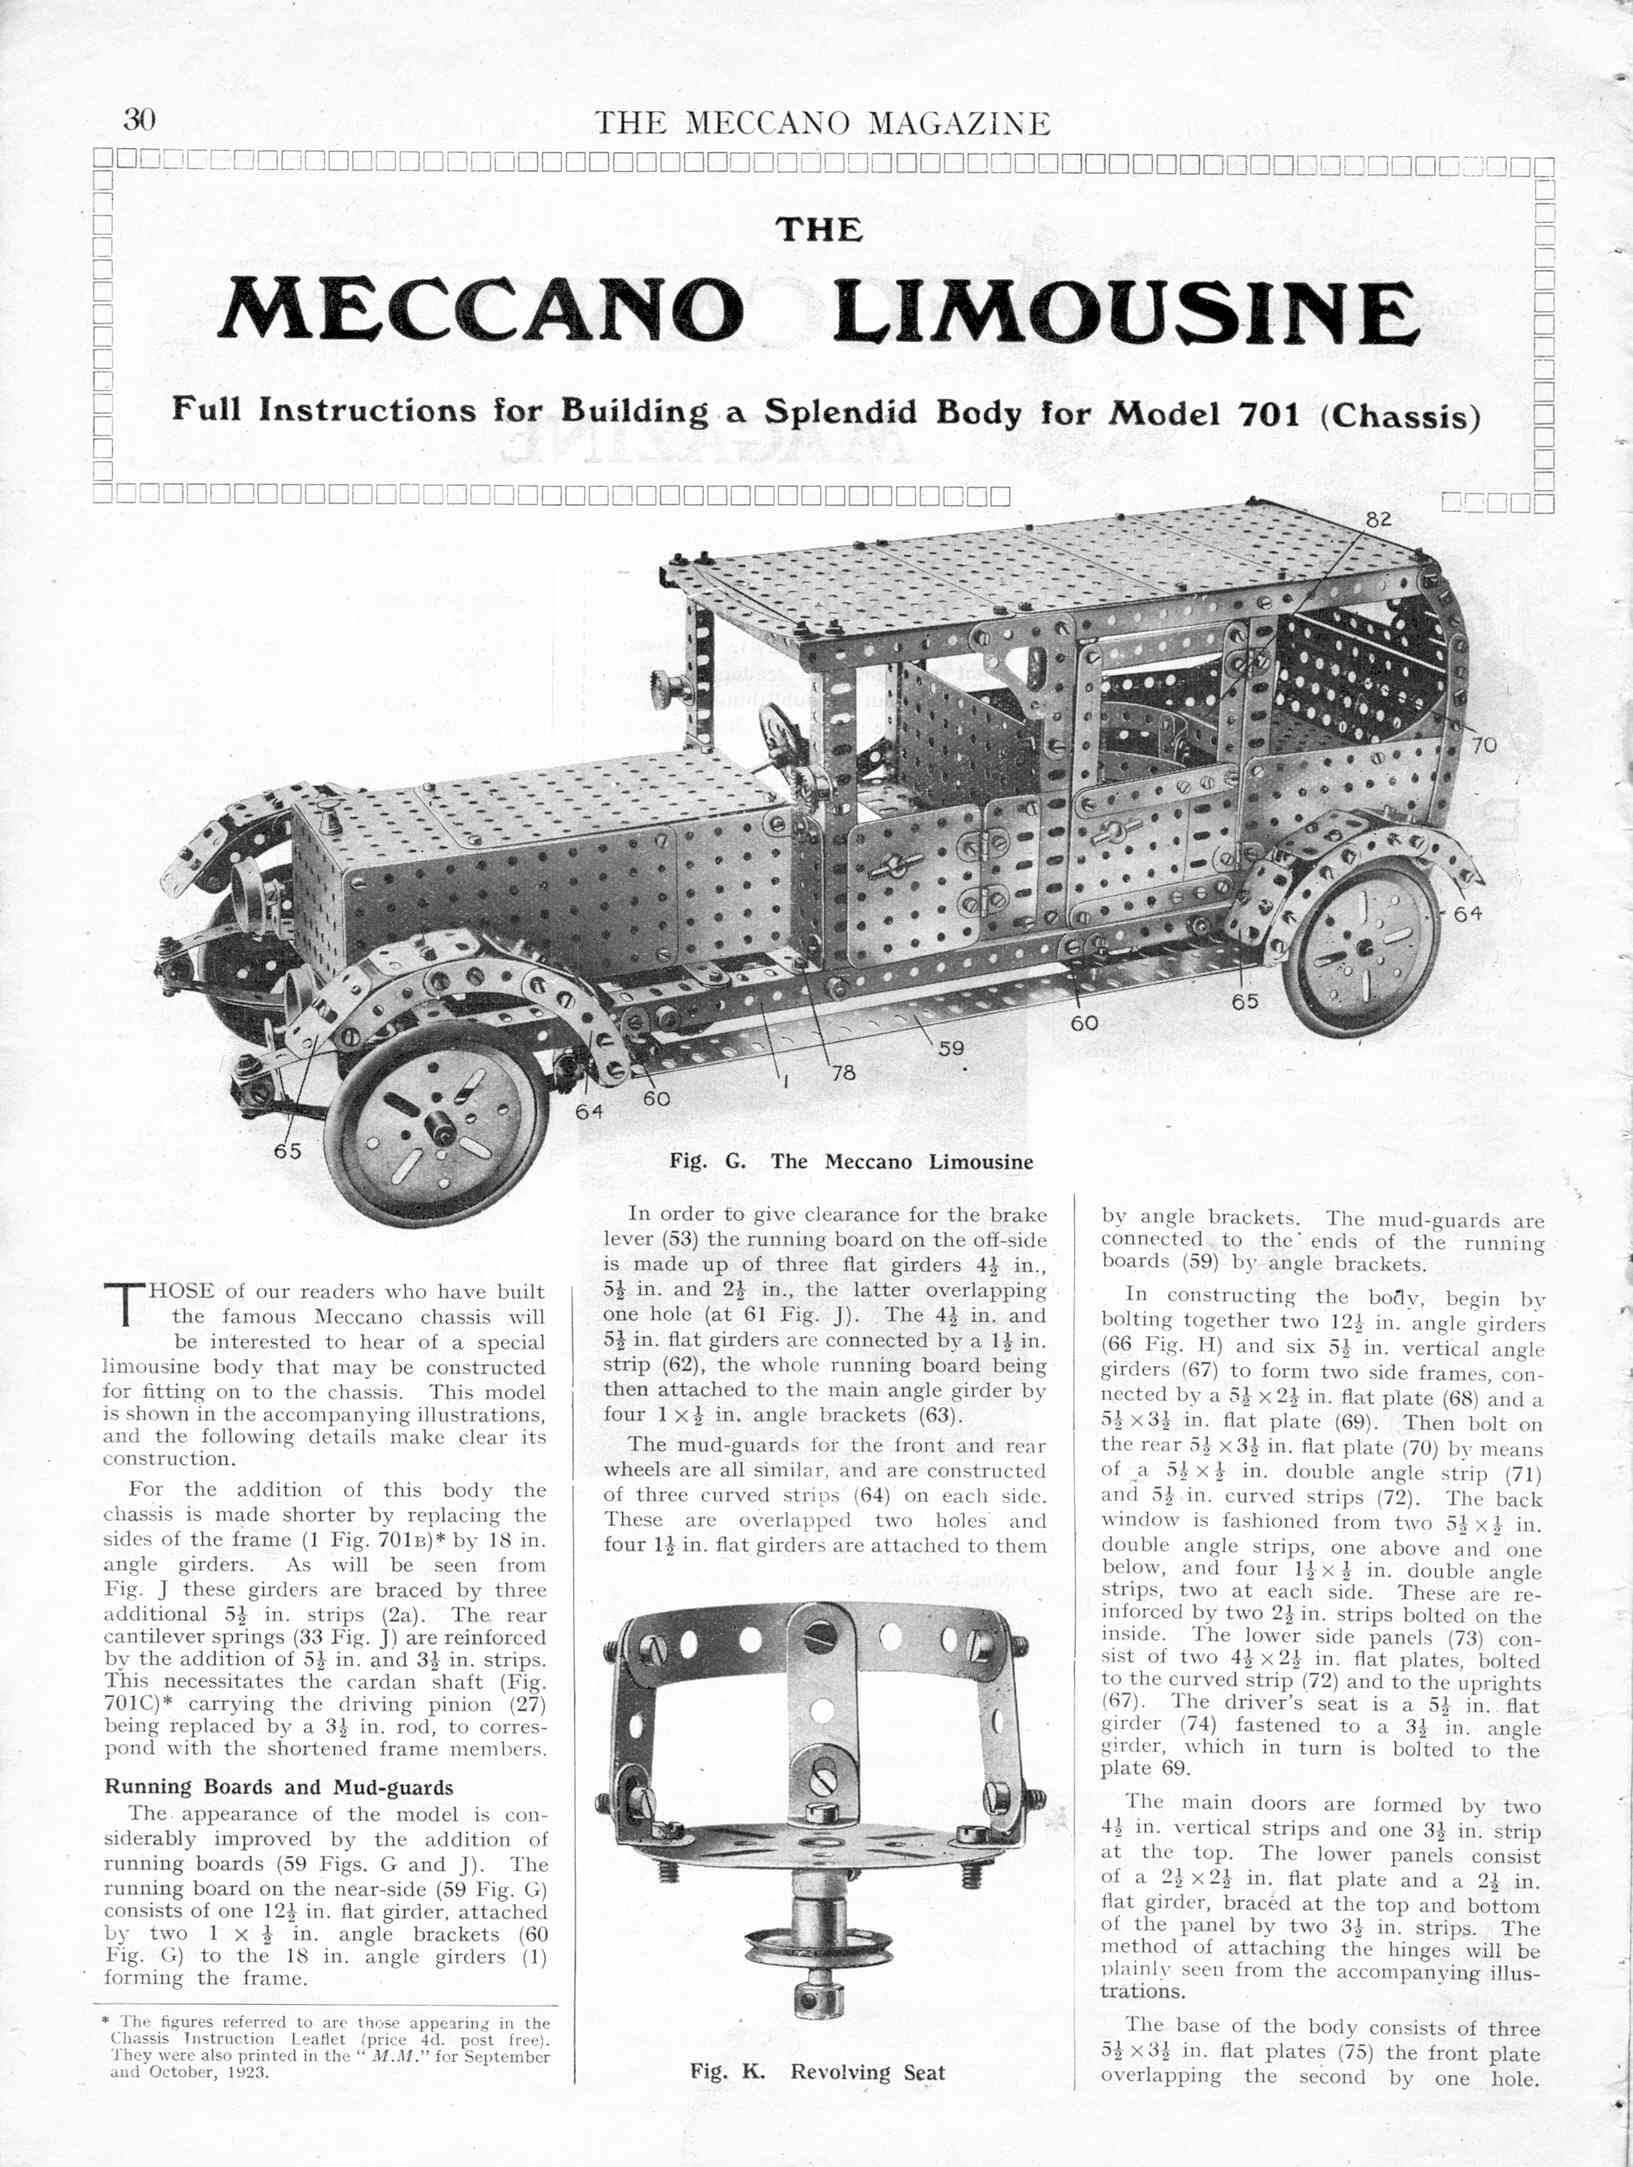 meccano limo in detail